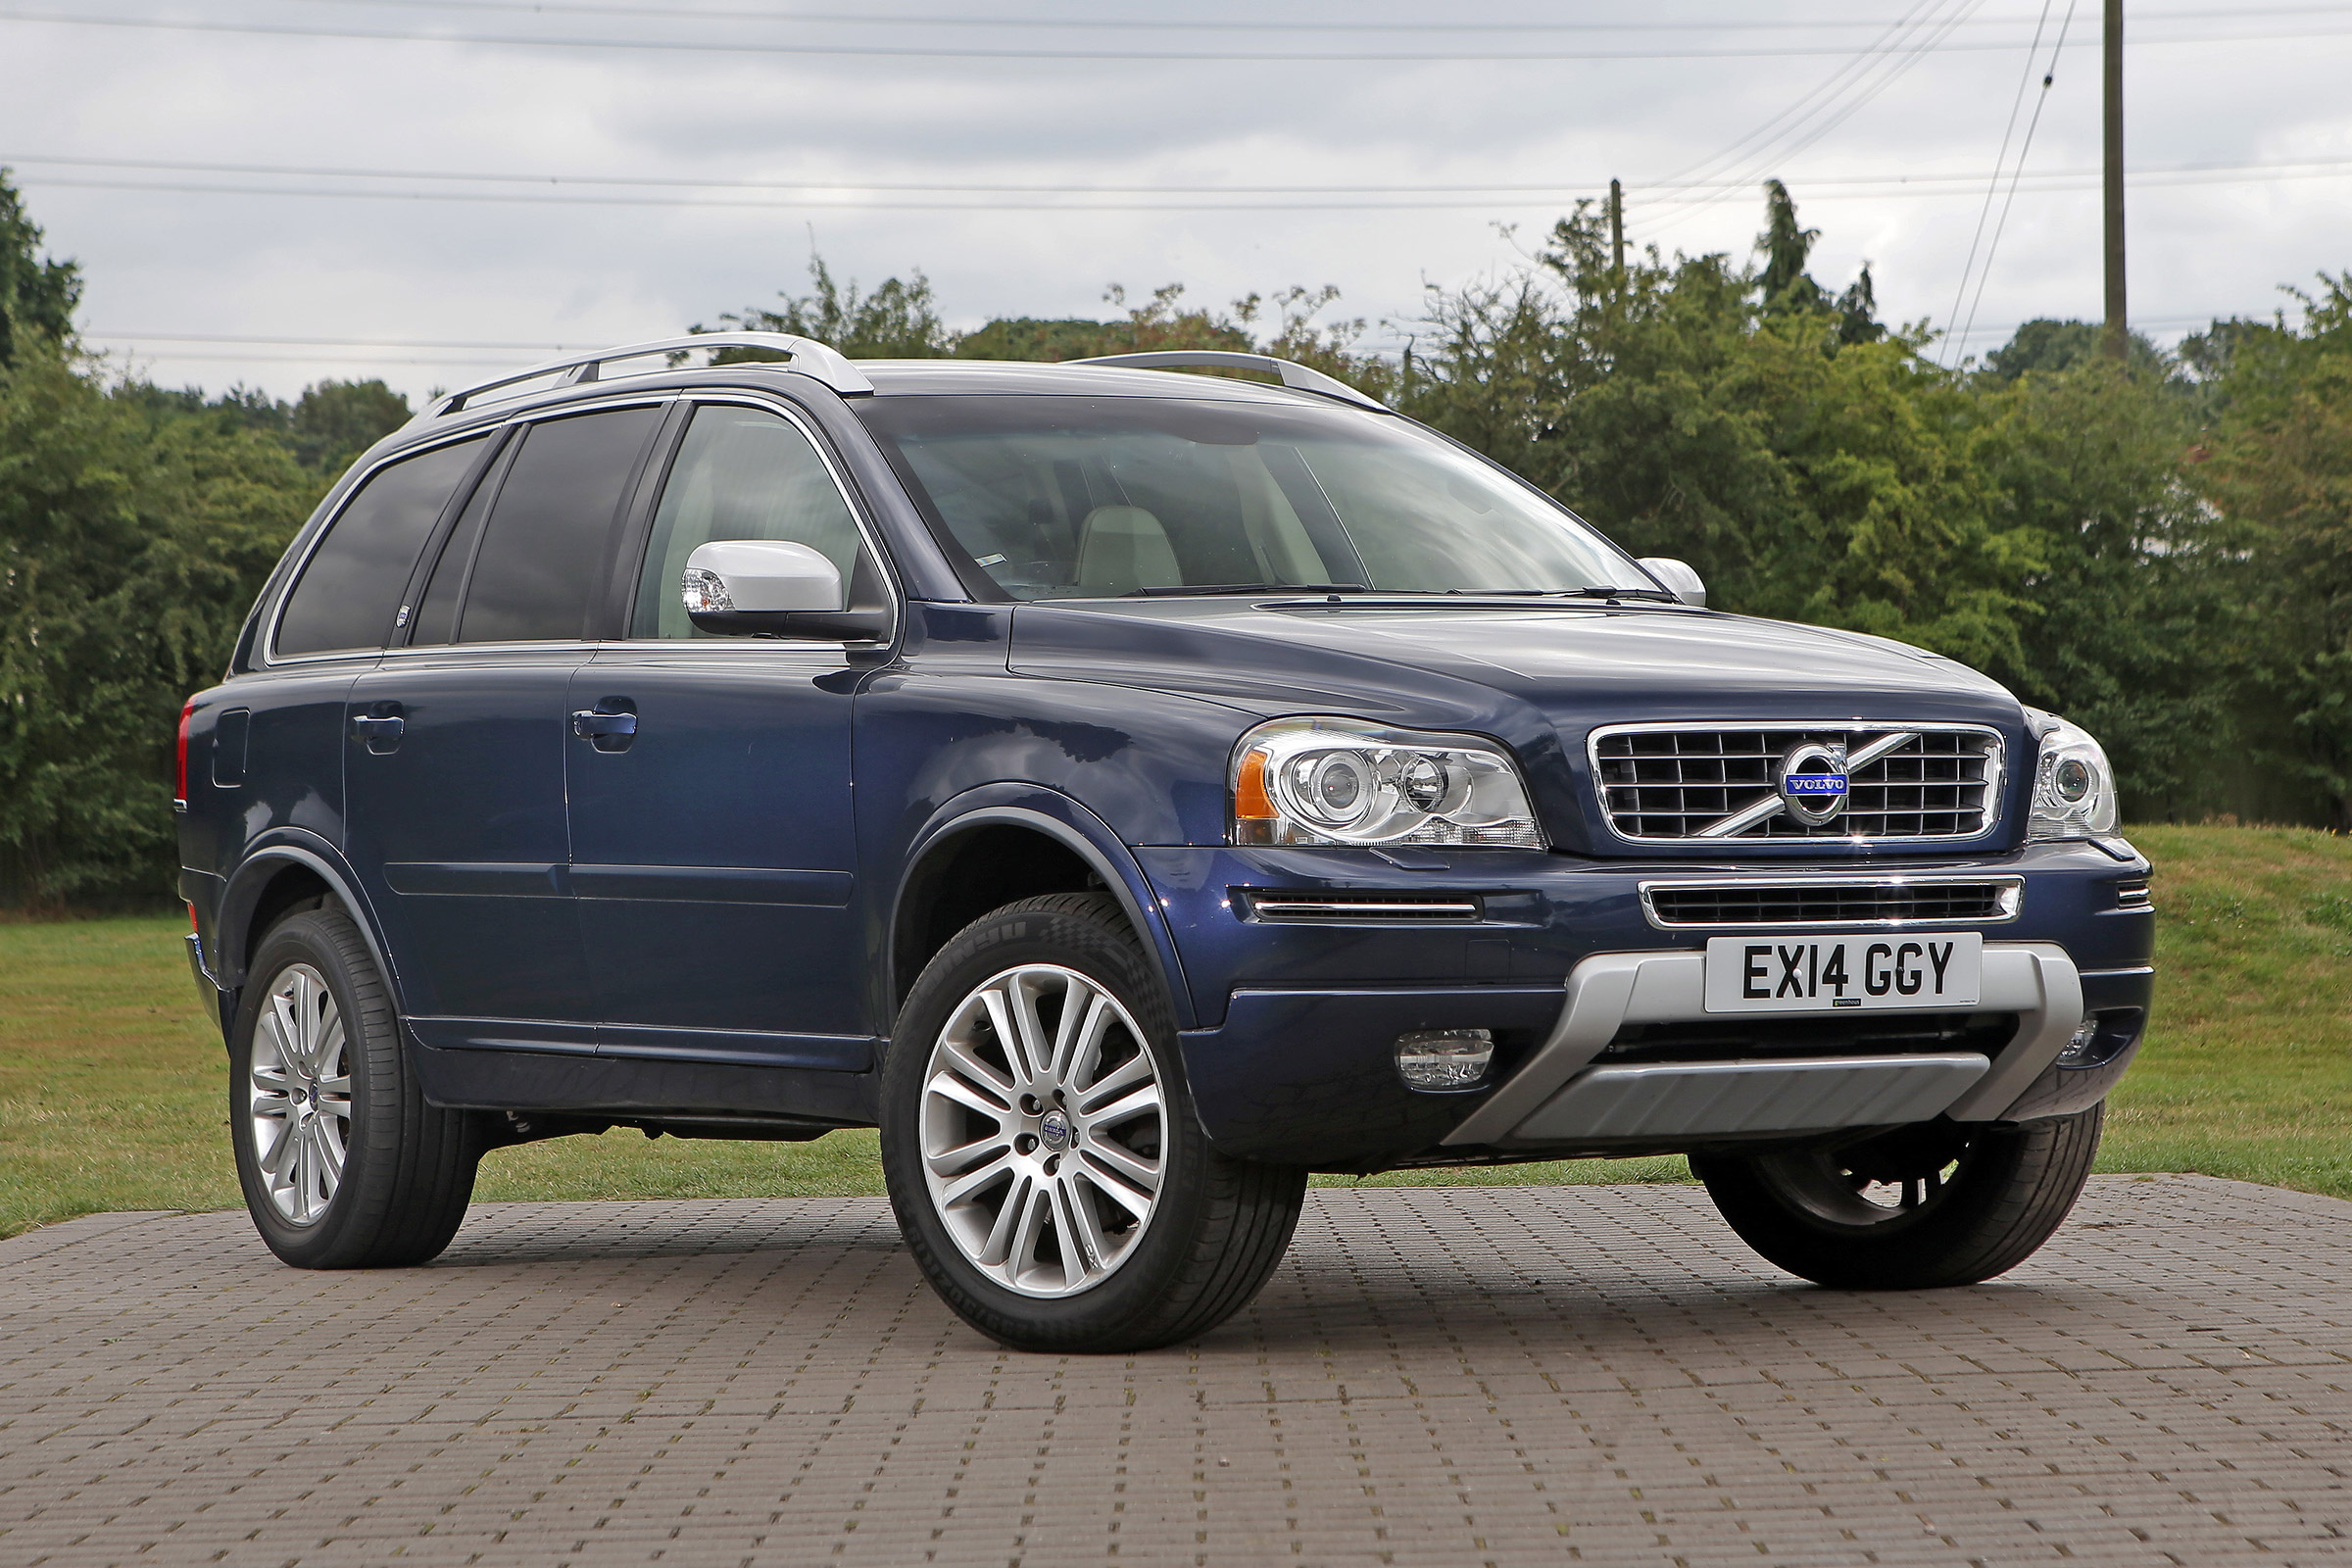 Used Volvo Xc90 Mk1 Review Auto Express